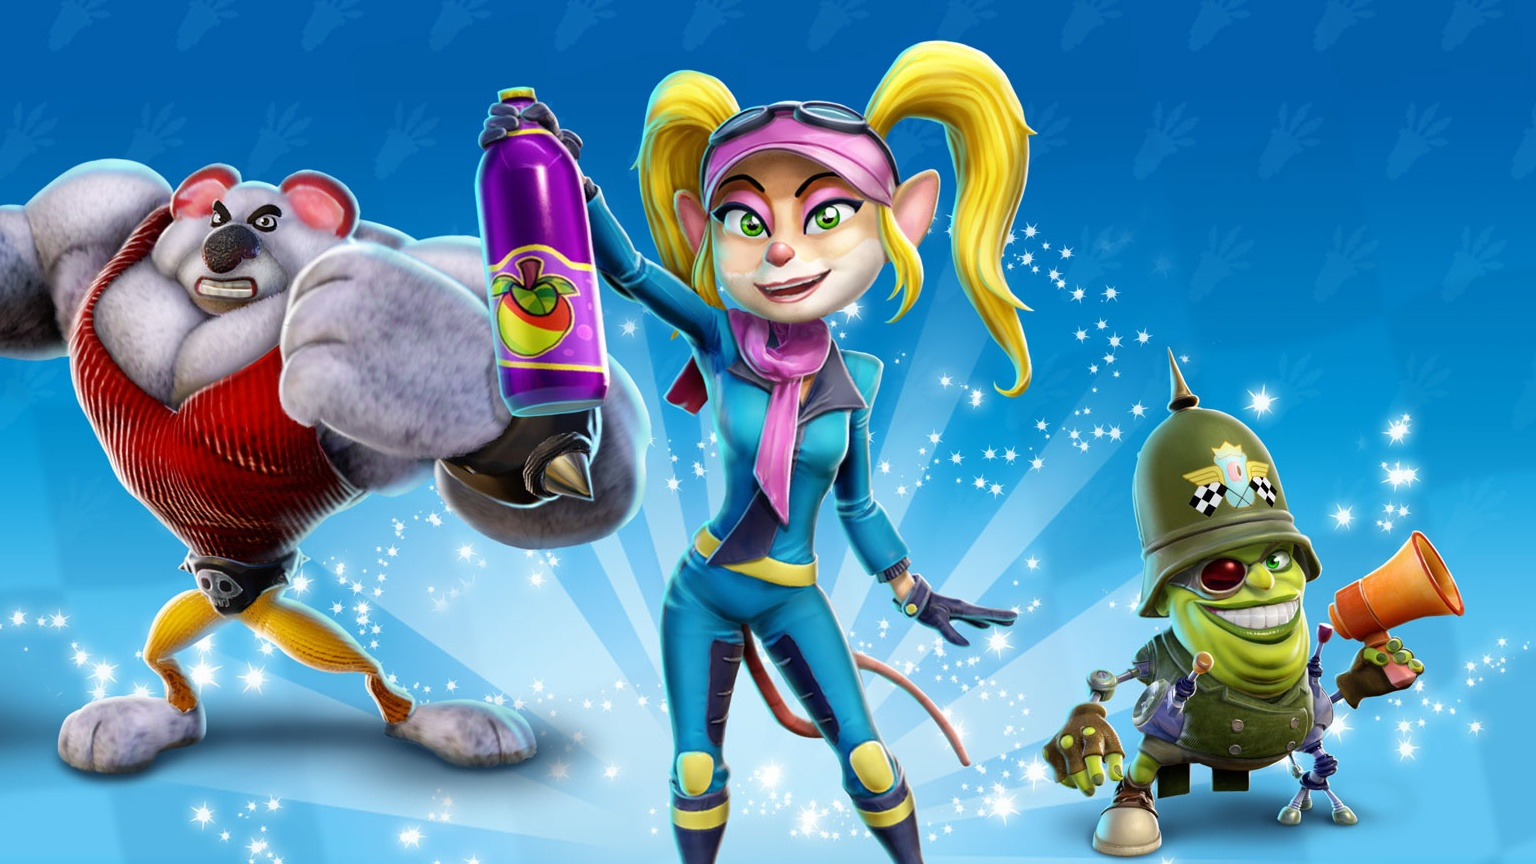 The Neon Circus Update Brings A New Mode To Crash Team Racing Nitro-Fueled